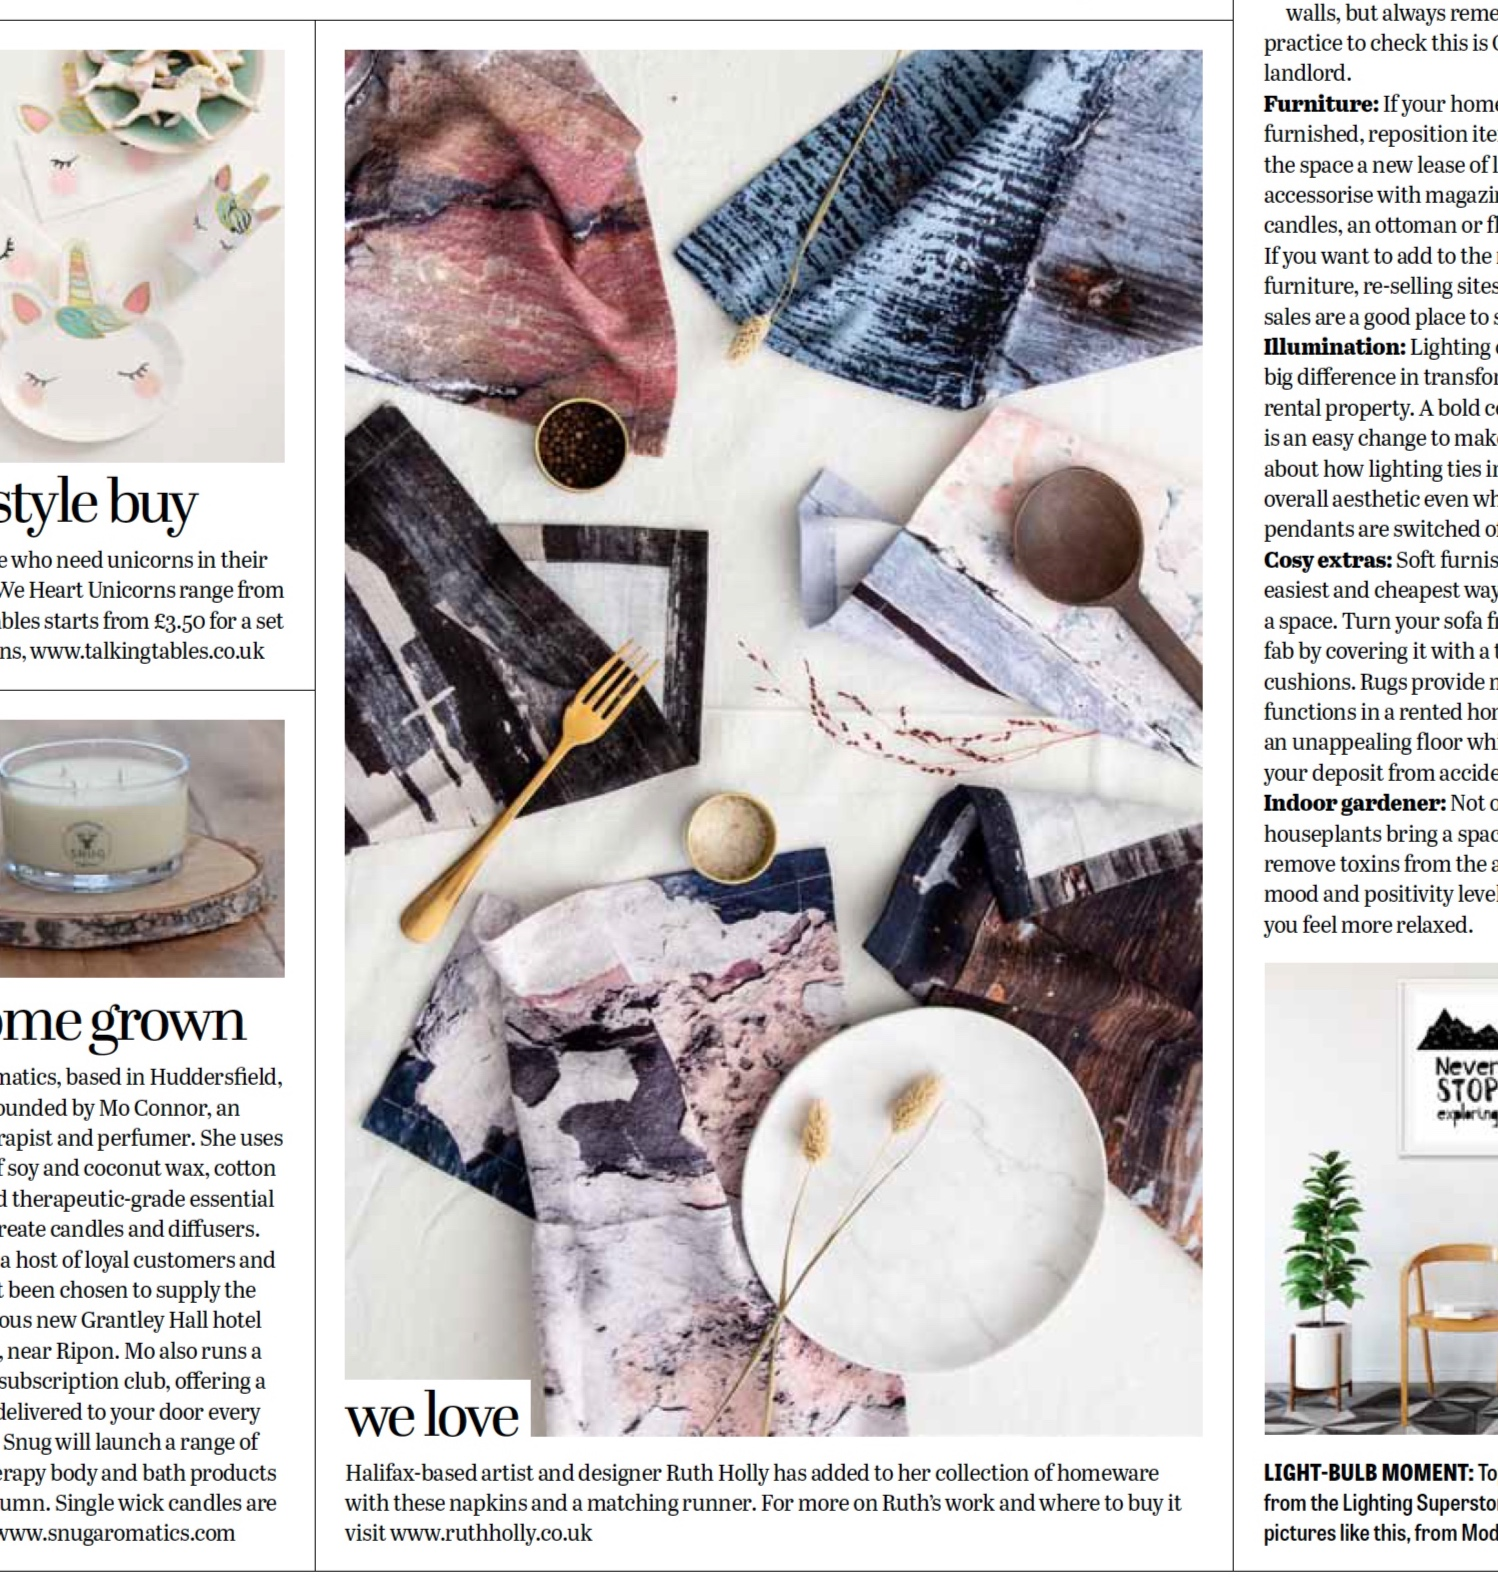 The Yorkshire Post Magazine - Our NEW napkins where featured in the 'we love' section of the Yorkshire Post in July 2019, a beautiful magazine highlighting new arrivals in the home and garden areas. You can shop these stylish cotton napkins with matching table runners here.